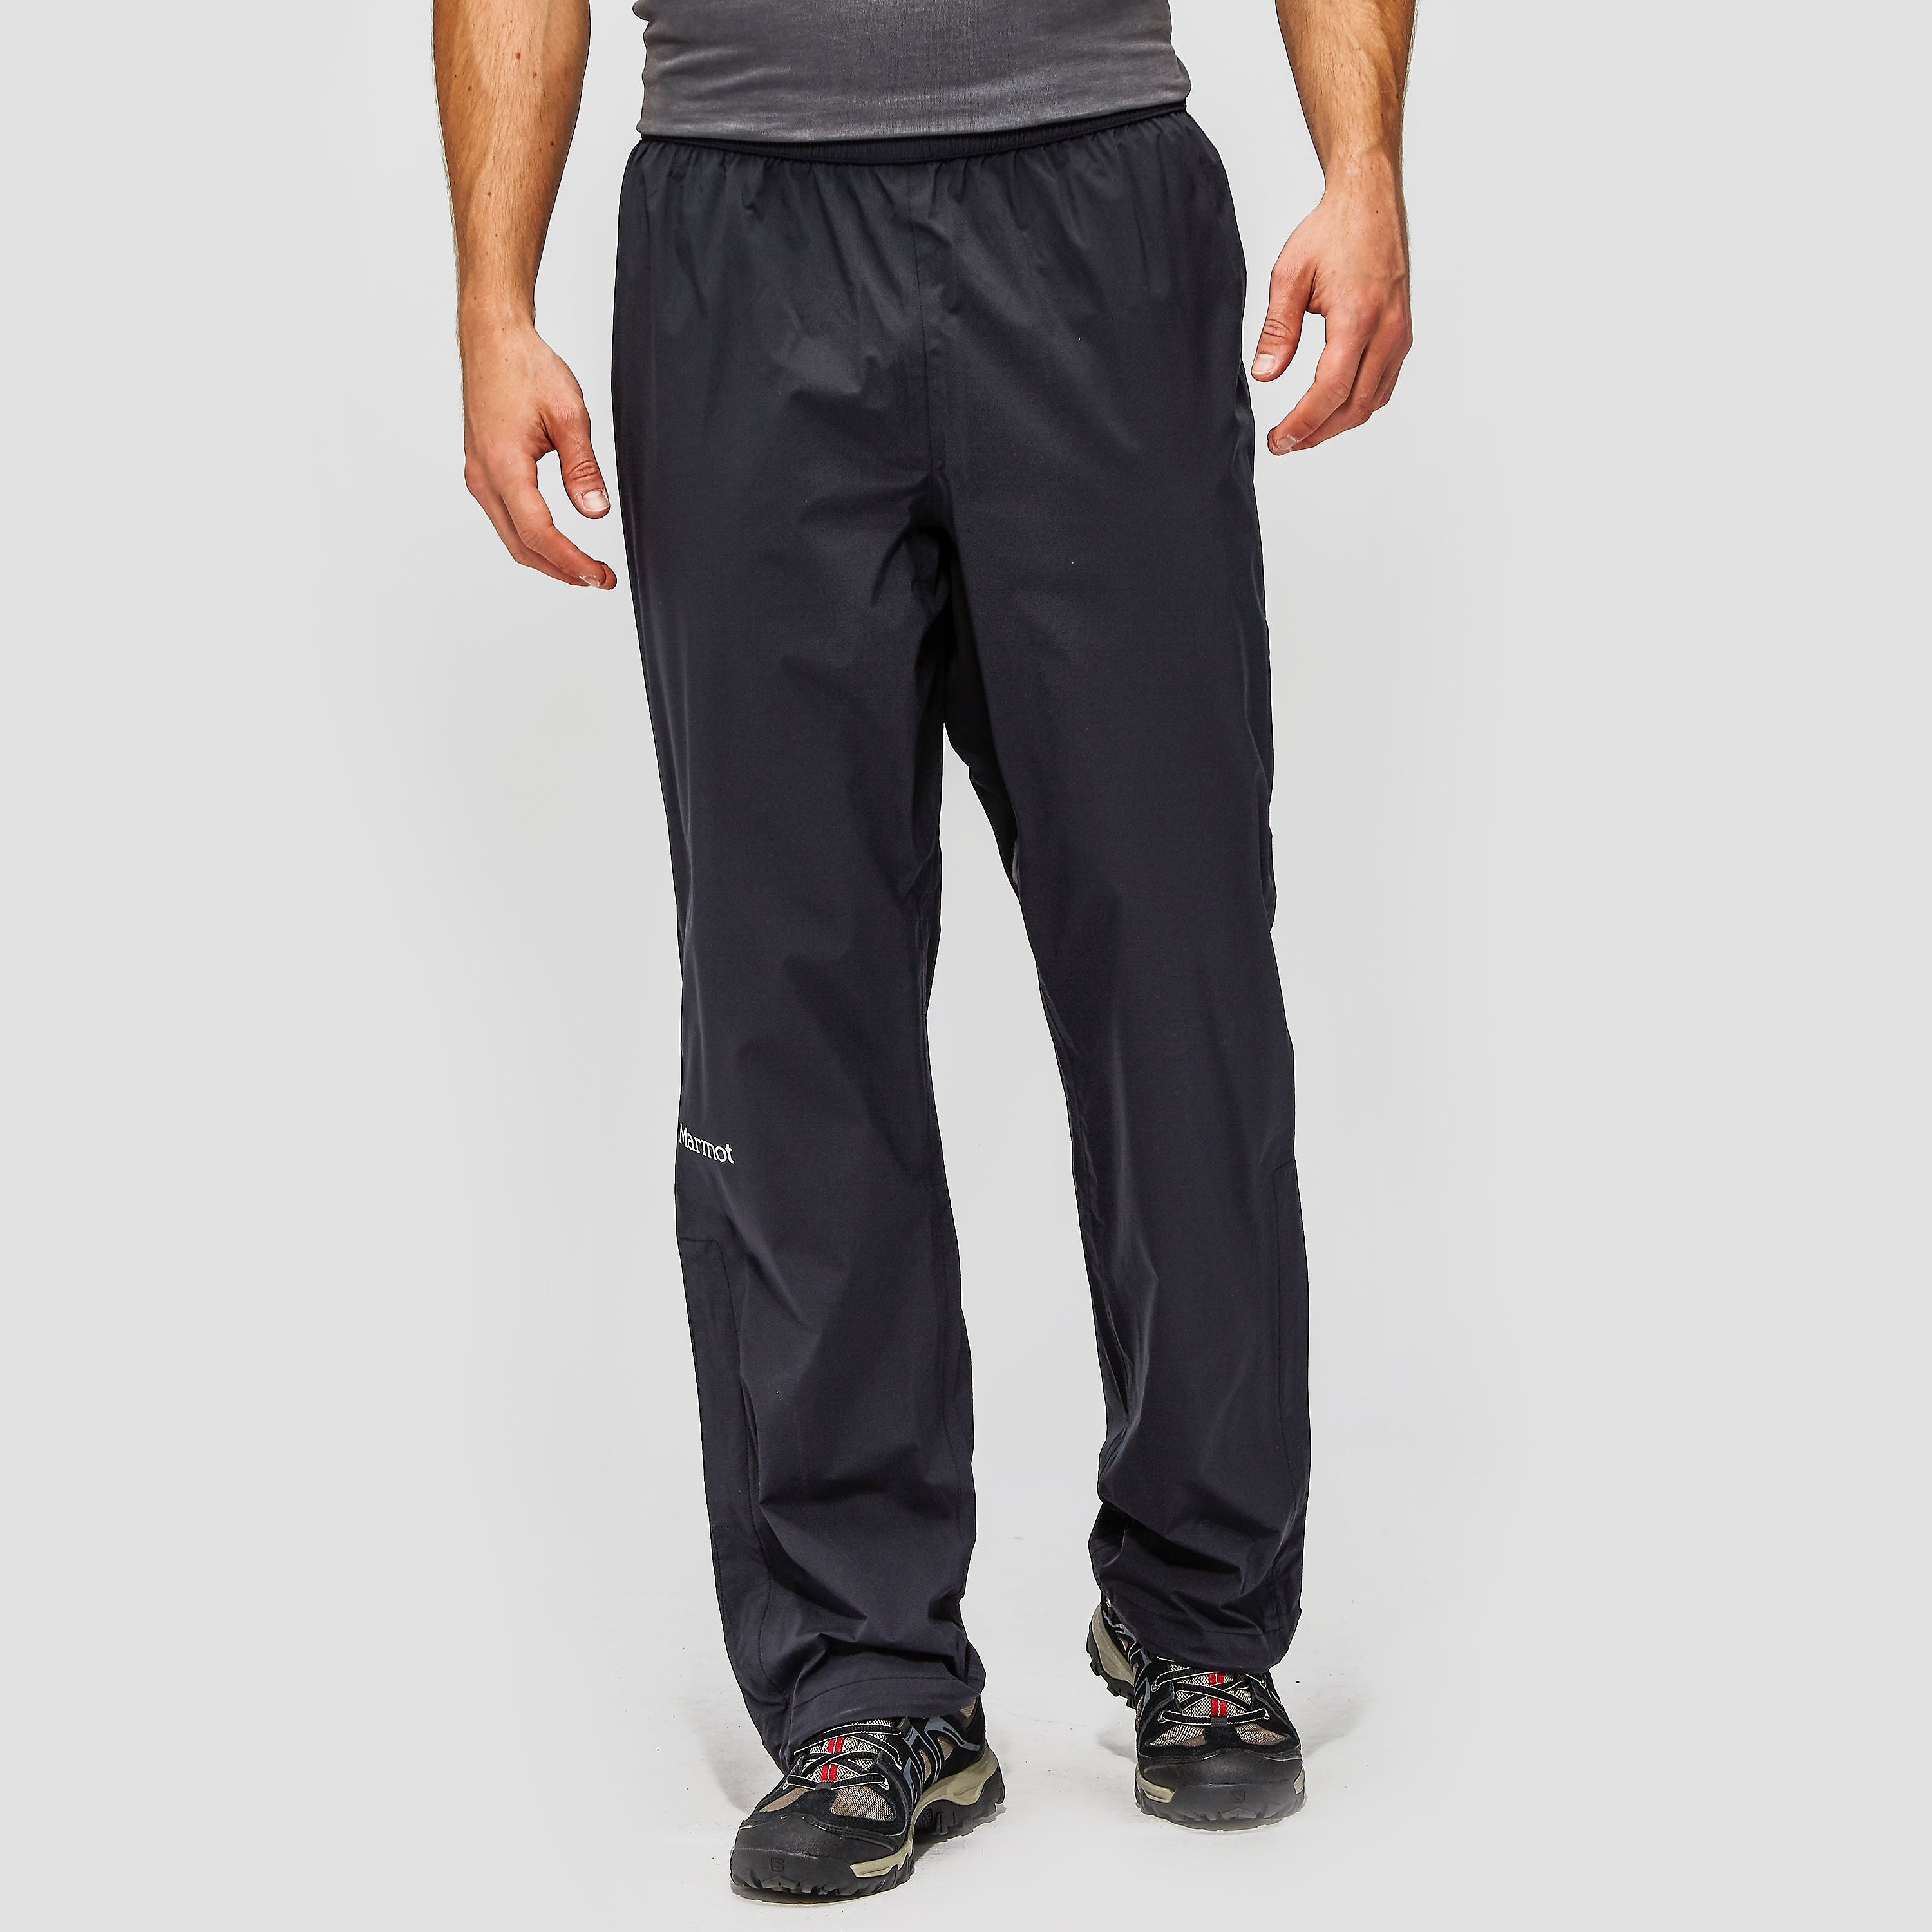 Marmot Essence Men's Pants